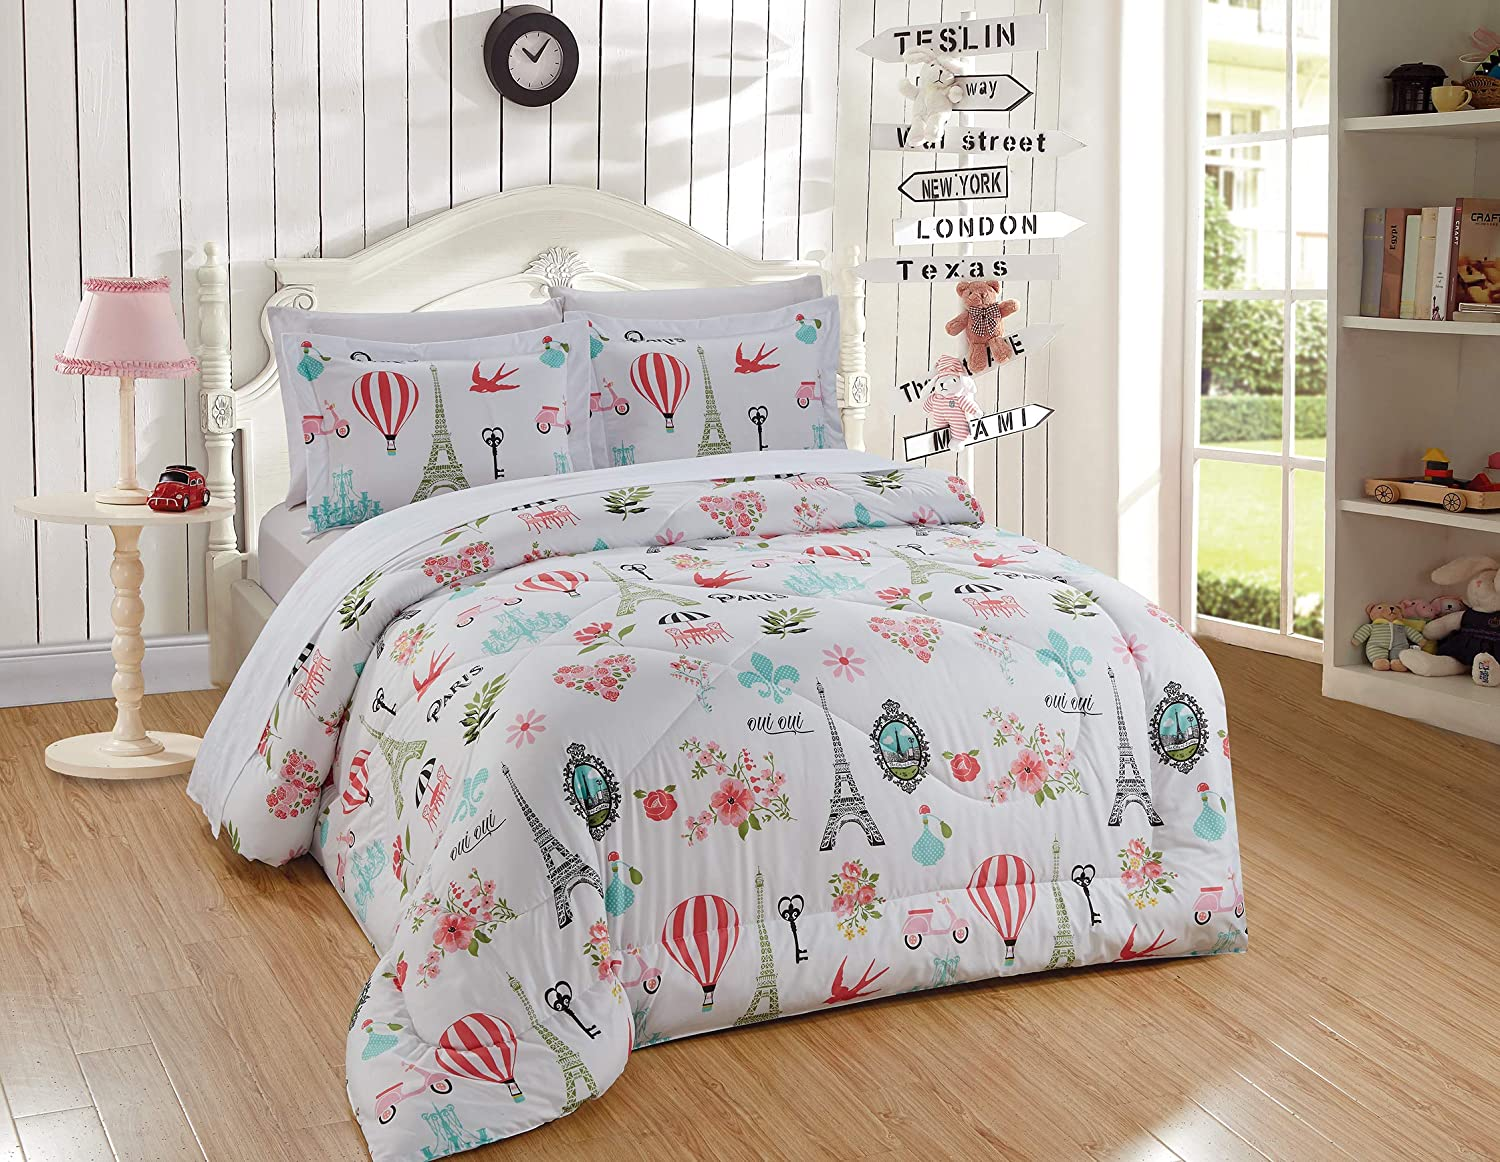 Better Home Style Pink White Blue Green Floral Paris Eiffel Tower Bonjour Flowers Design 5 Piece Comforter Bedding Set Bed in a Bag with Complete Sheet Set # Paris Balloon (Twin)